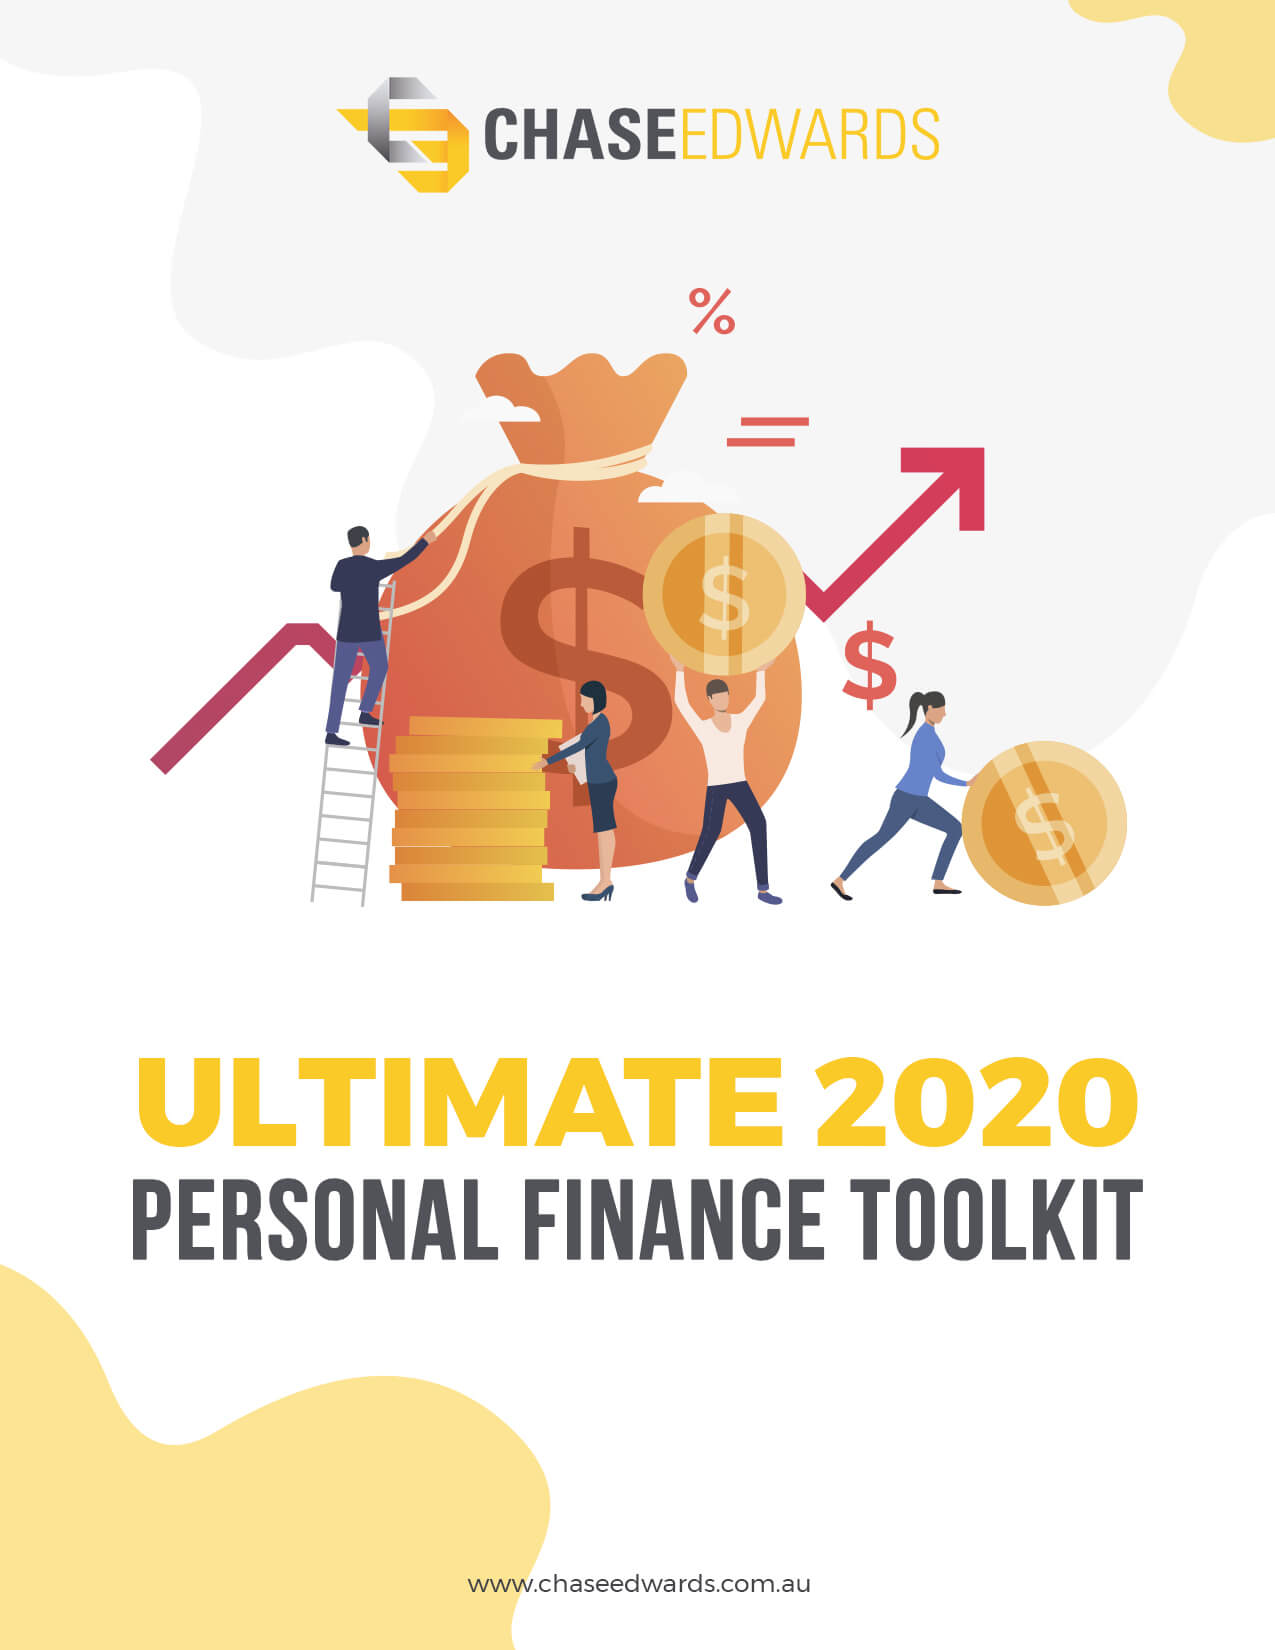 Chase Edwards Ultimate 2020 Personal Finance Toolkit